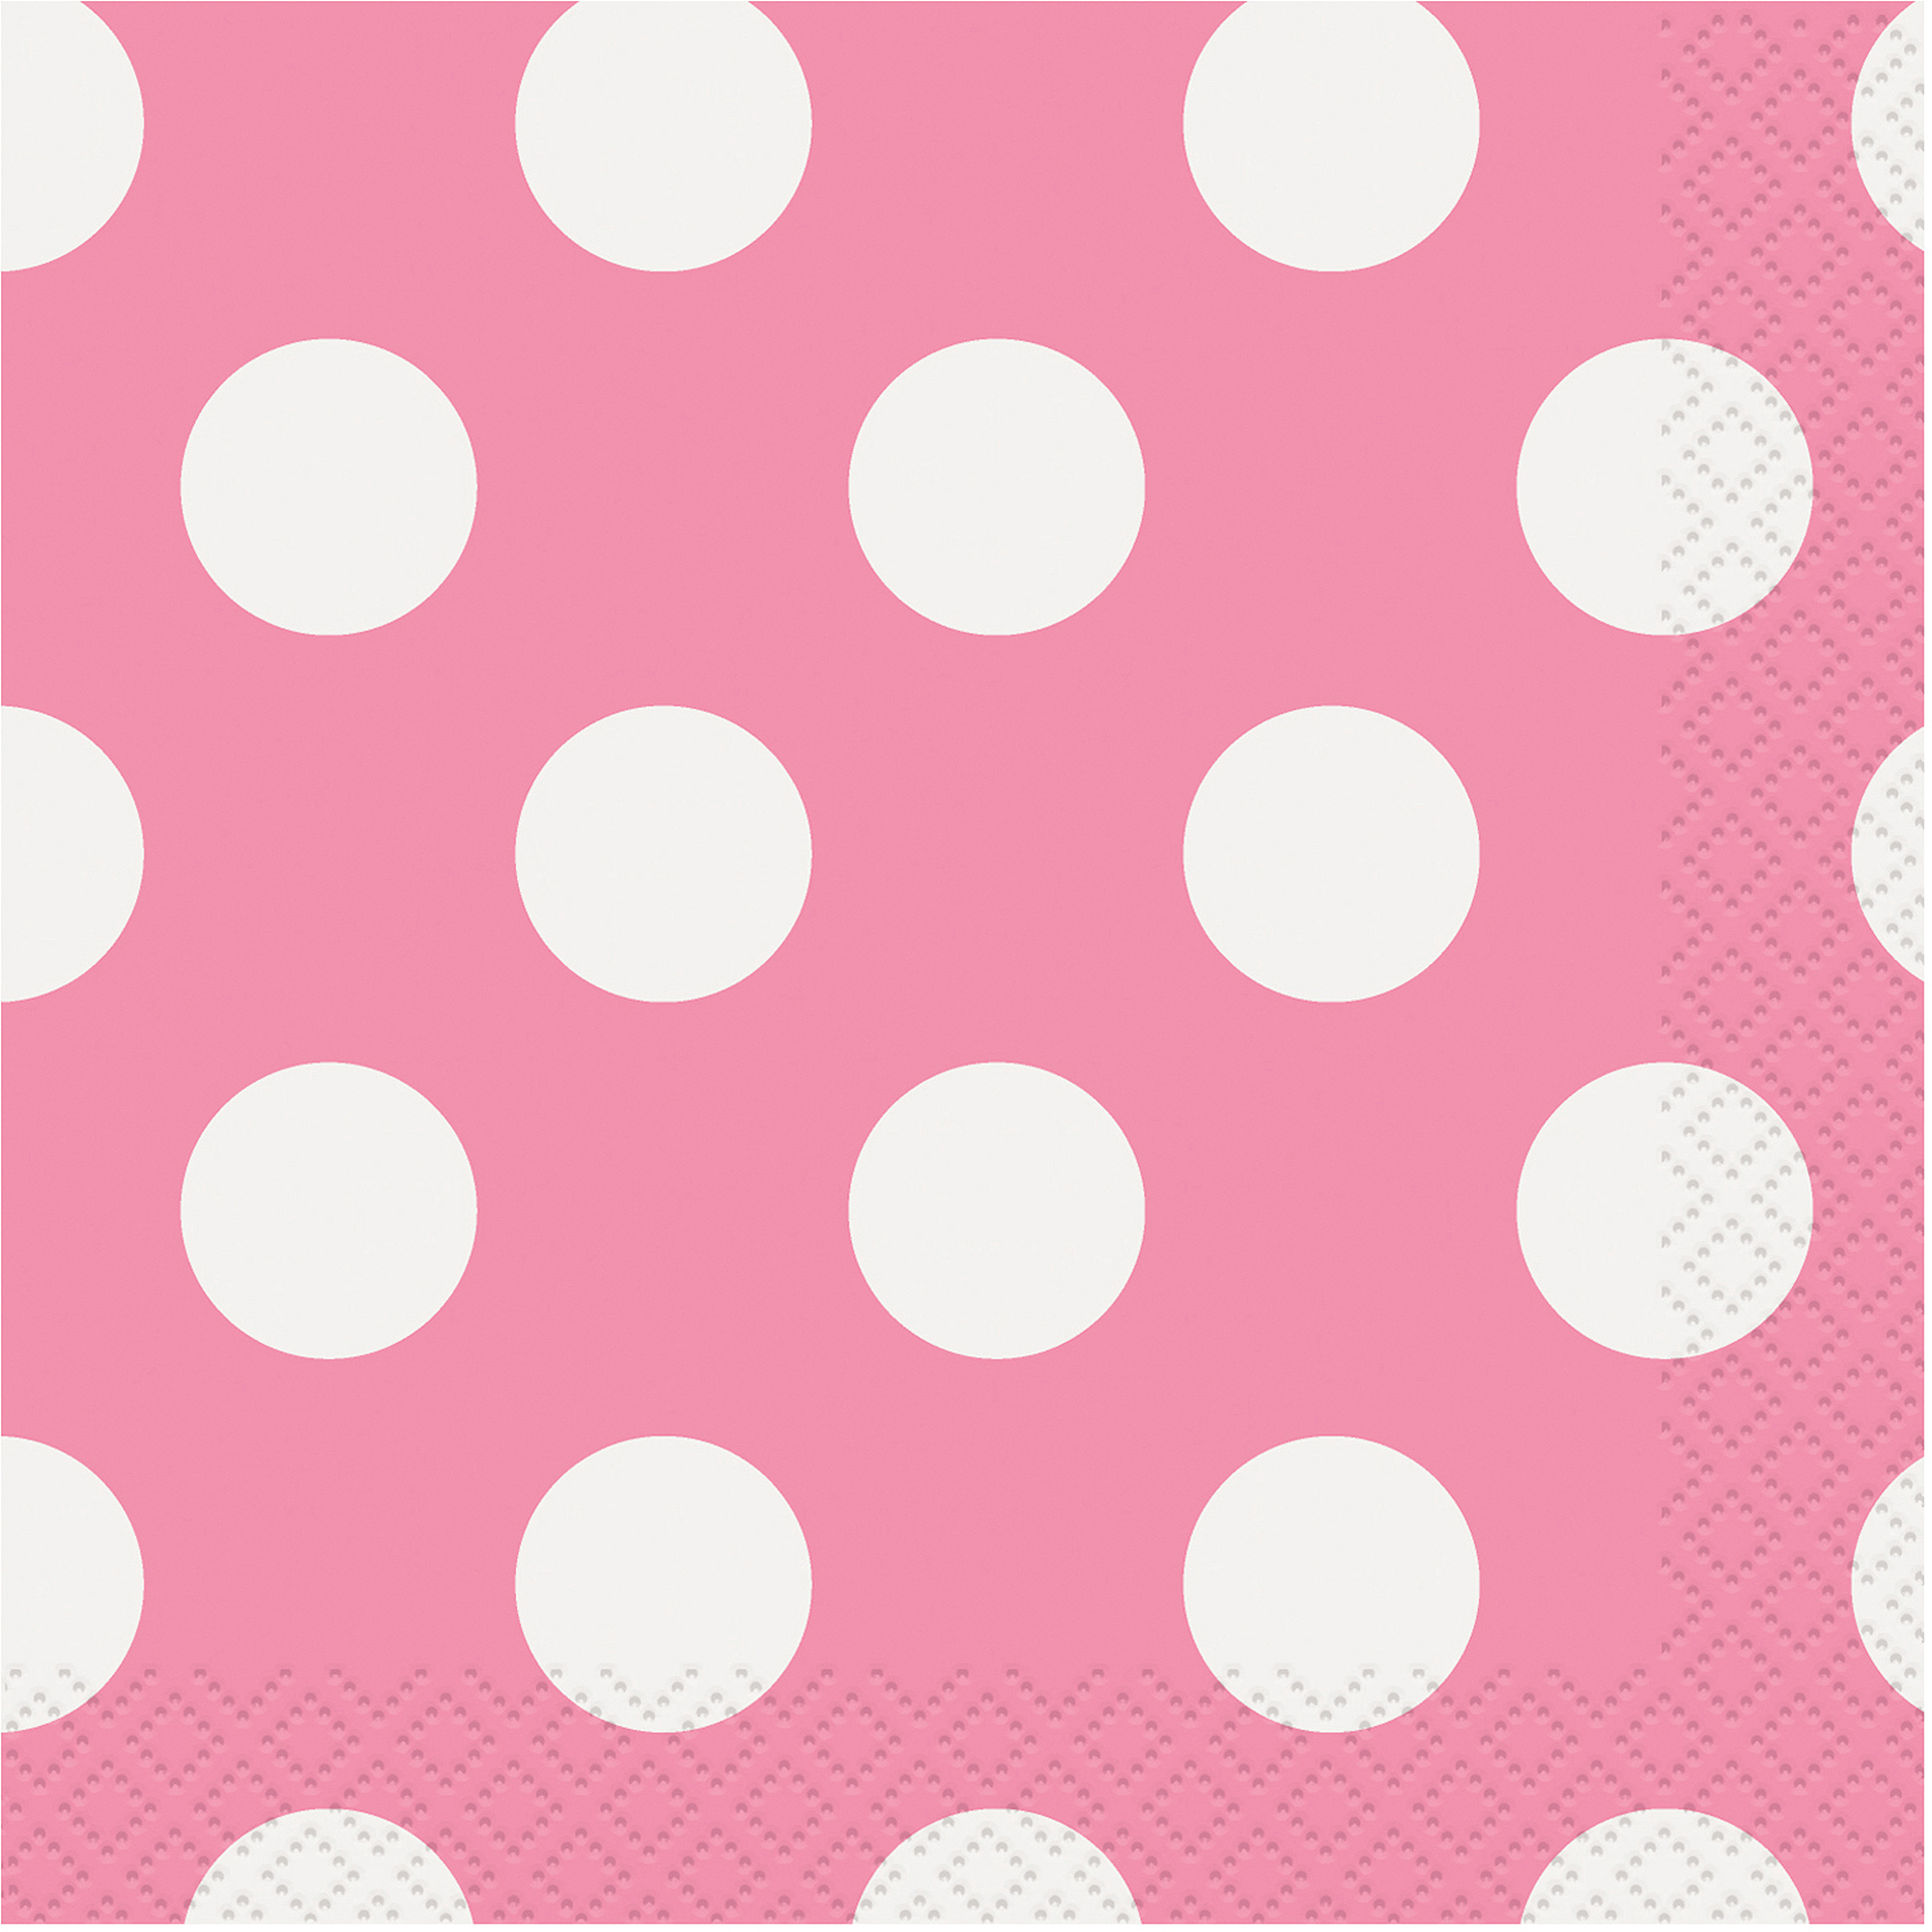 Hot Pink Polka Dot Beverage Napkins, 40pk